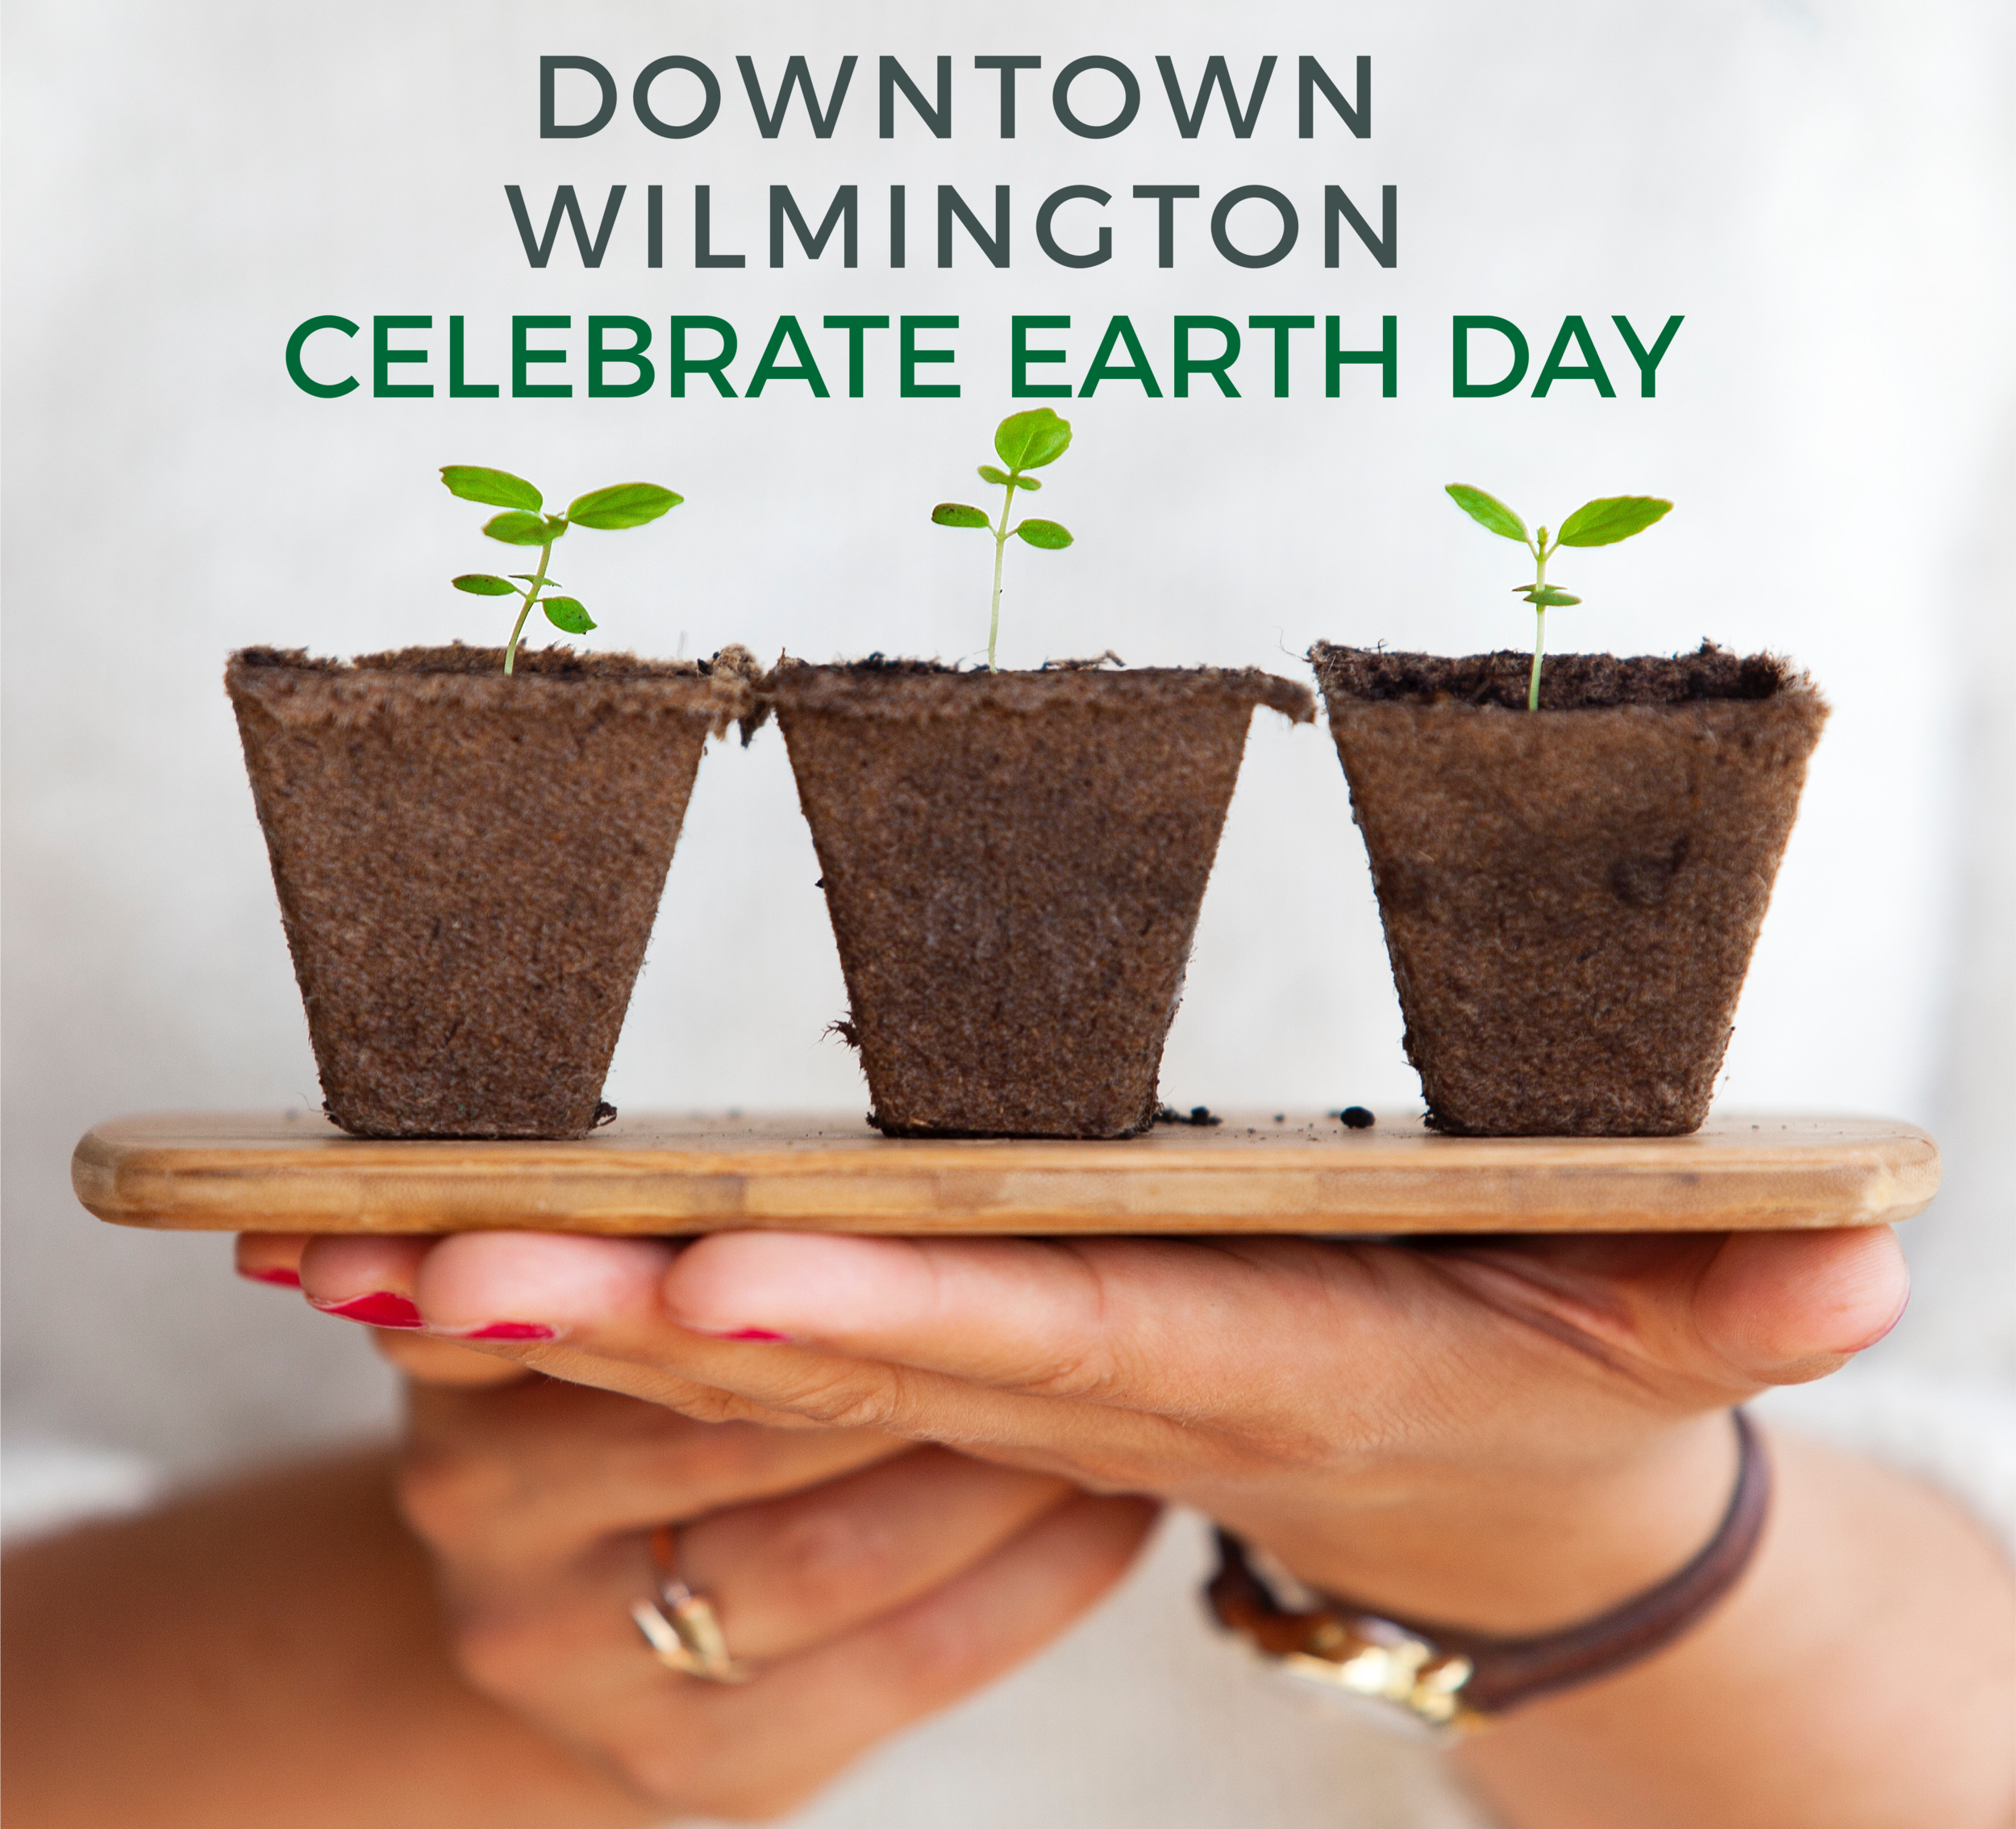 Celebrate earth Day in Downtown Wilmington